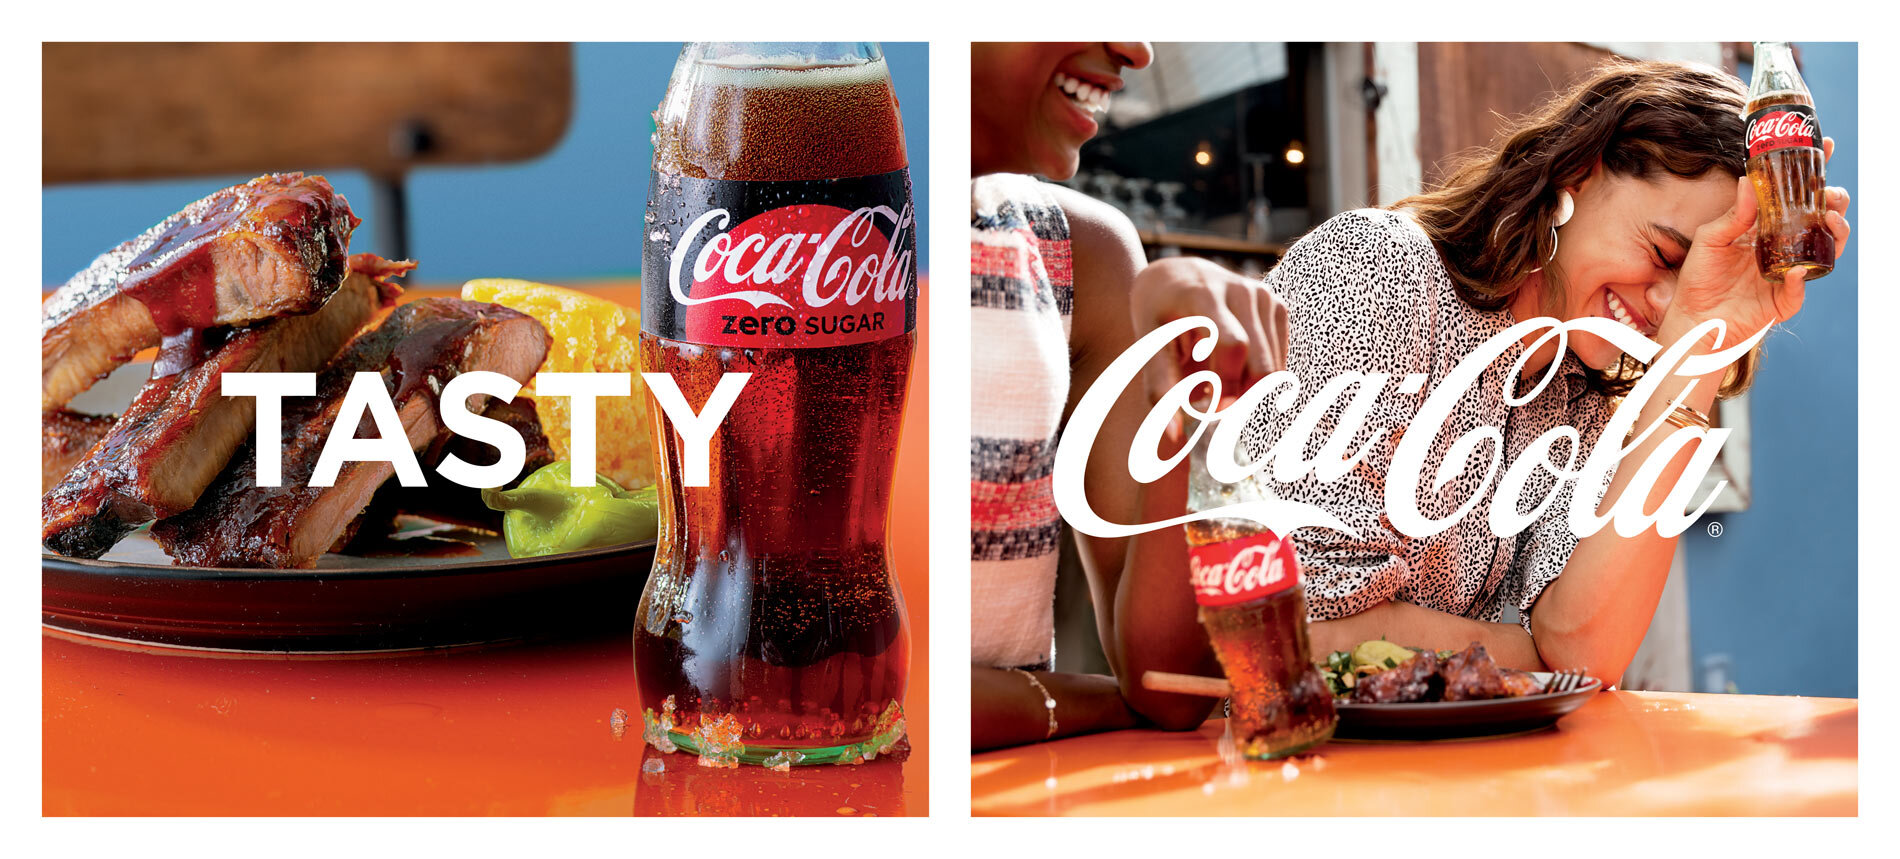 Food Styling — Lead Food Stylist: Victoria Granof, Los Angeles Food Styling Assistant:  Kendra Aronson . Client: Coca Cola. Photographer: (L) Anna Williams (R): Anais & Dax. Agency: Joy Asbury Productions. Location: Los Angeles.